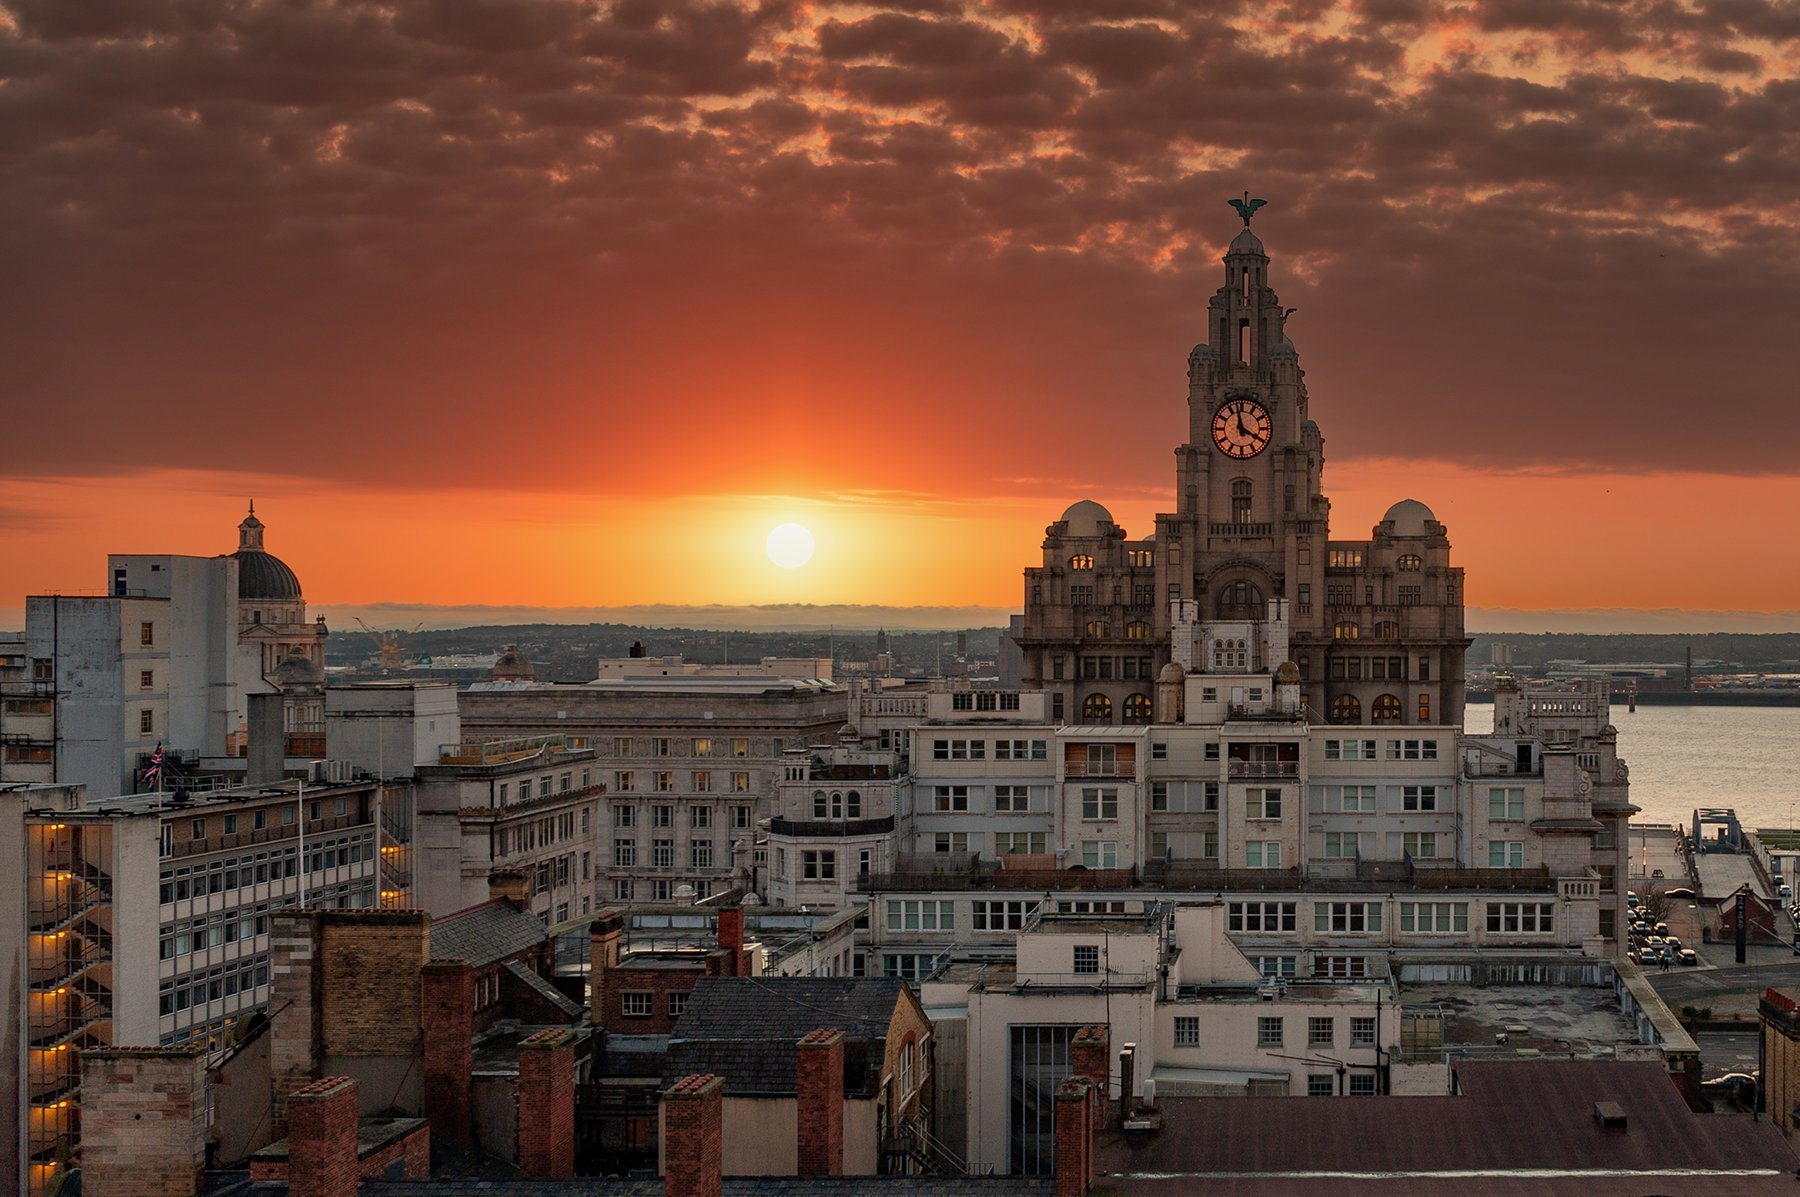 Sunset over Liverpool and River Mersey